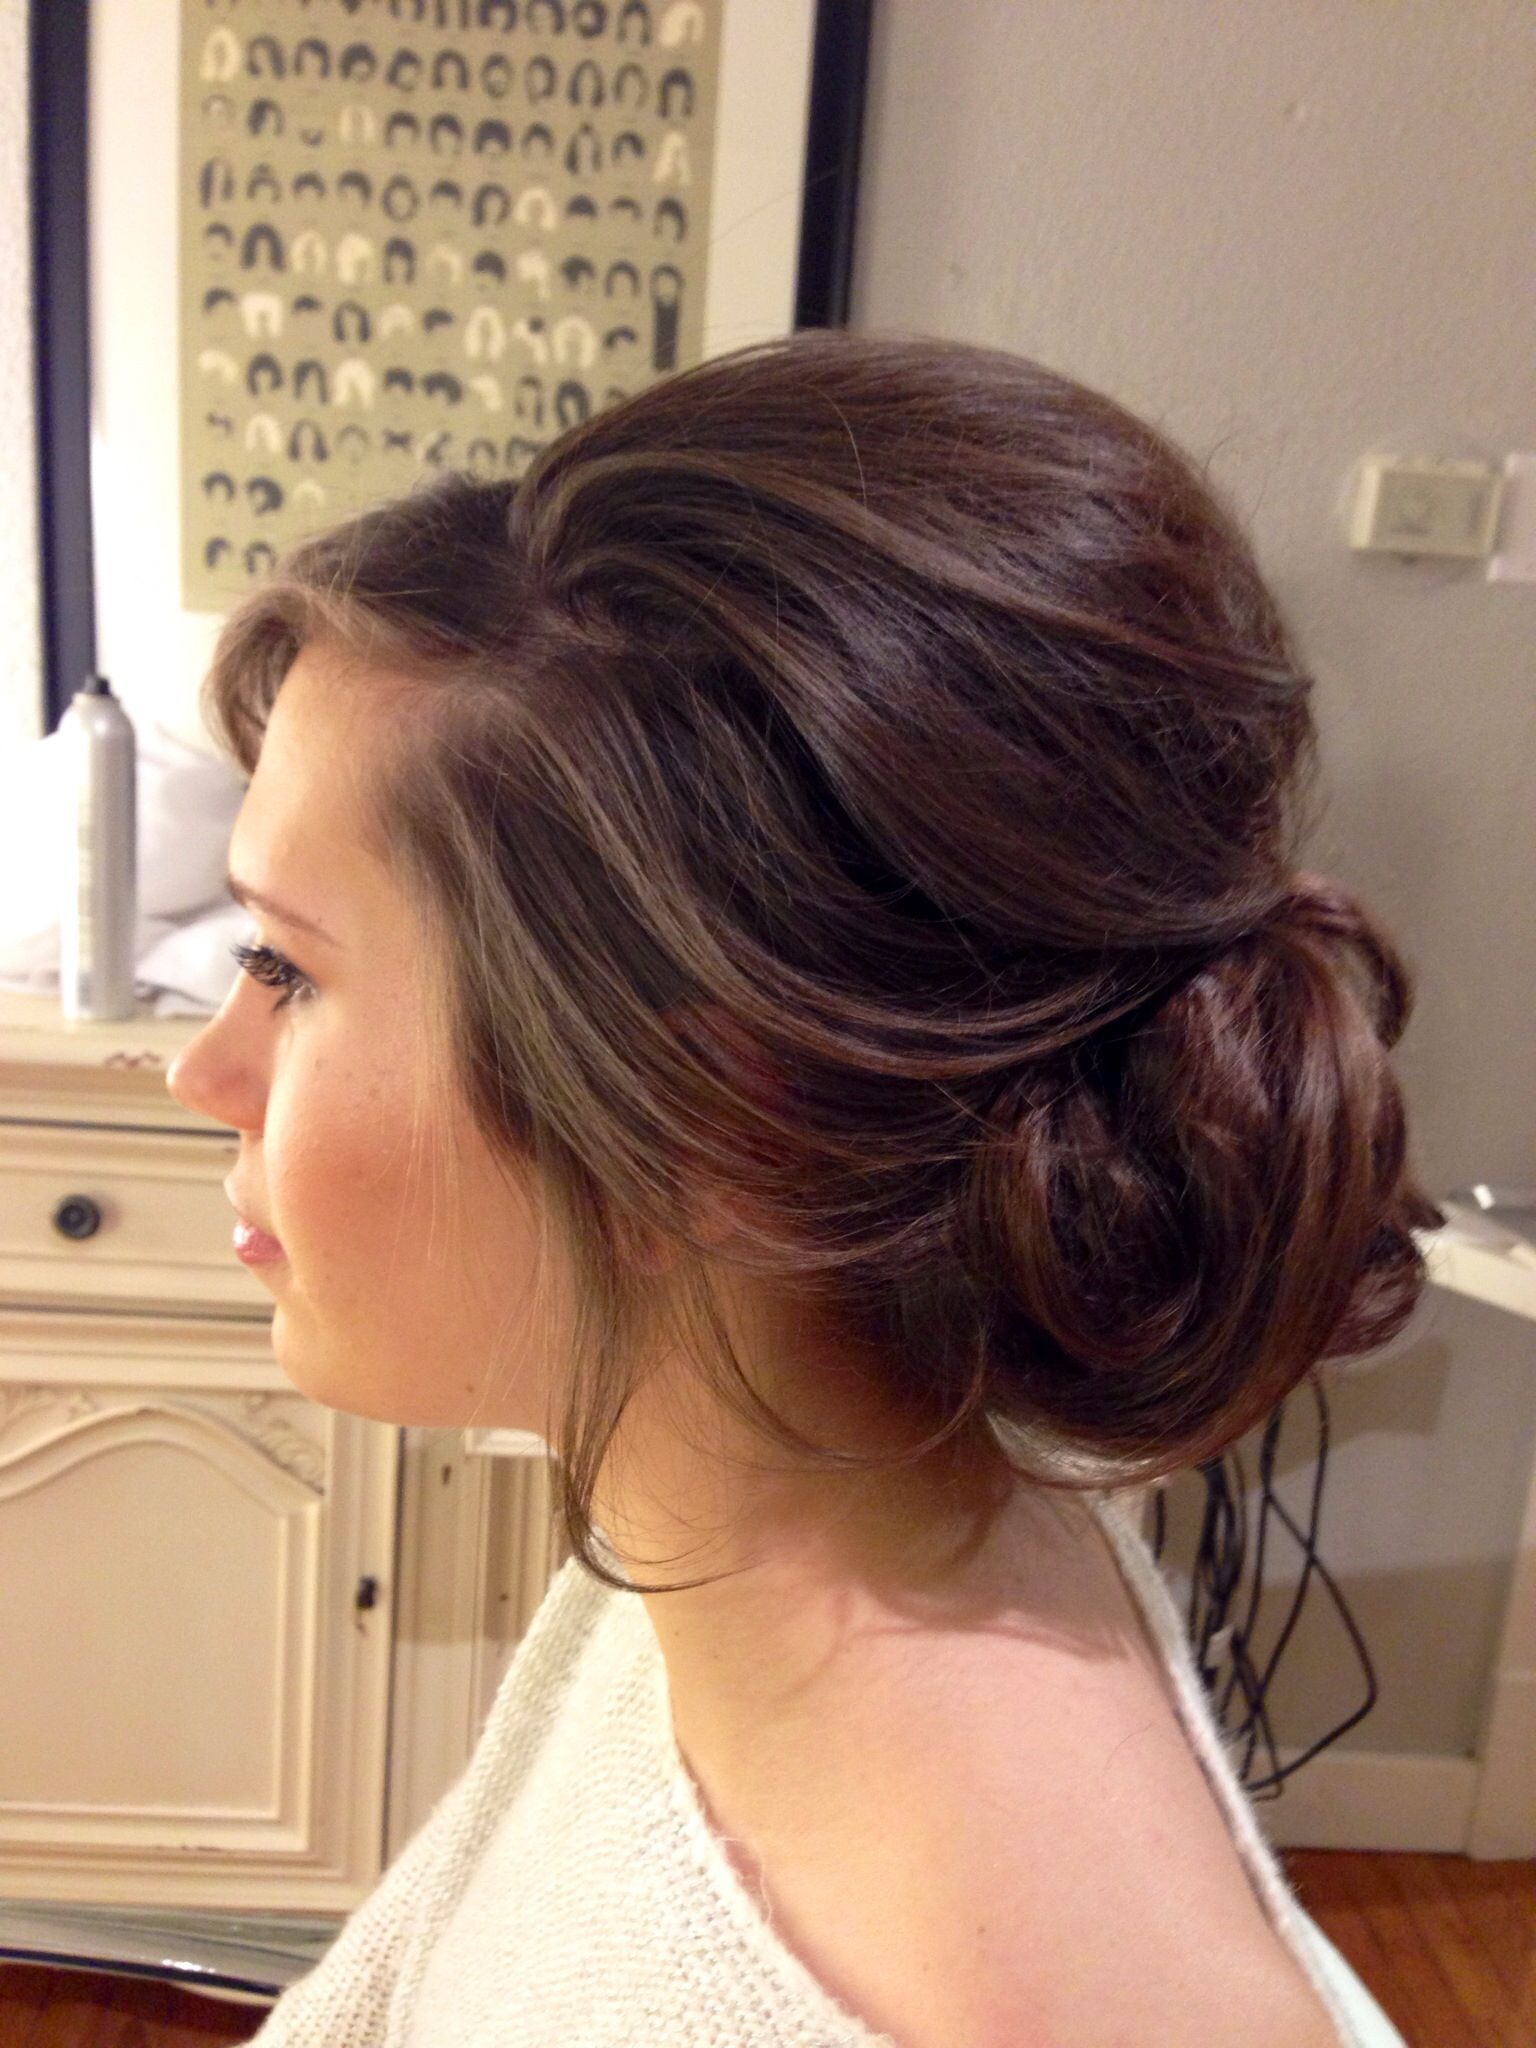 perfectly loose updo | bouffant hair updo | wedding